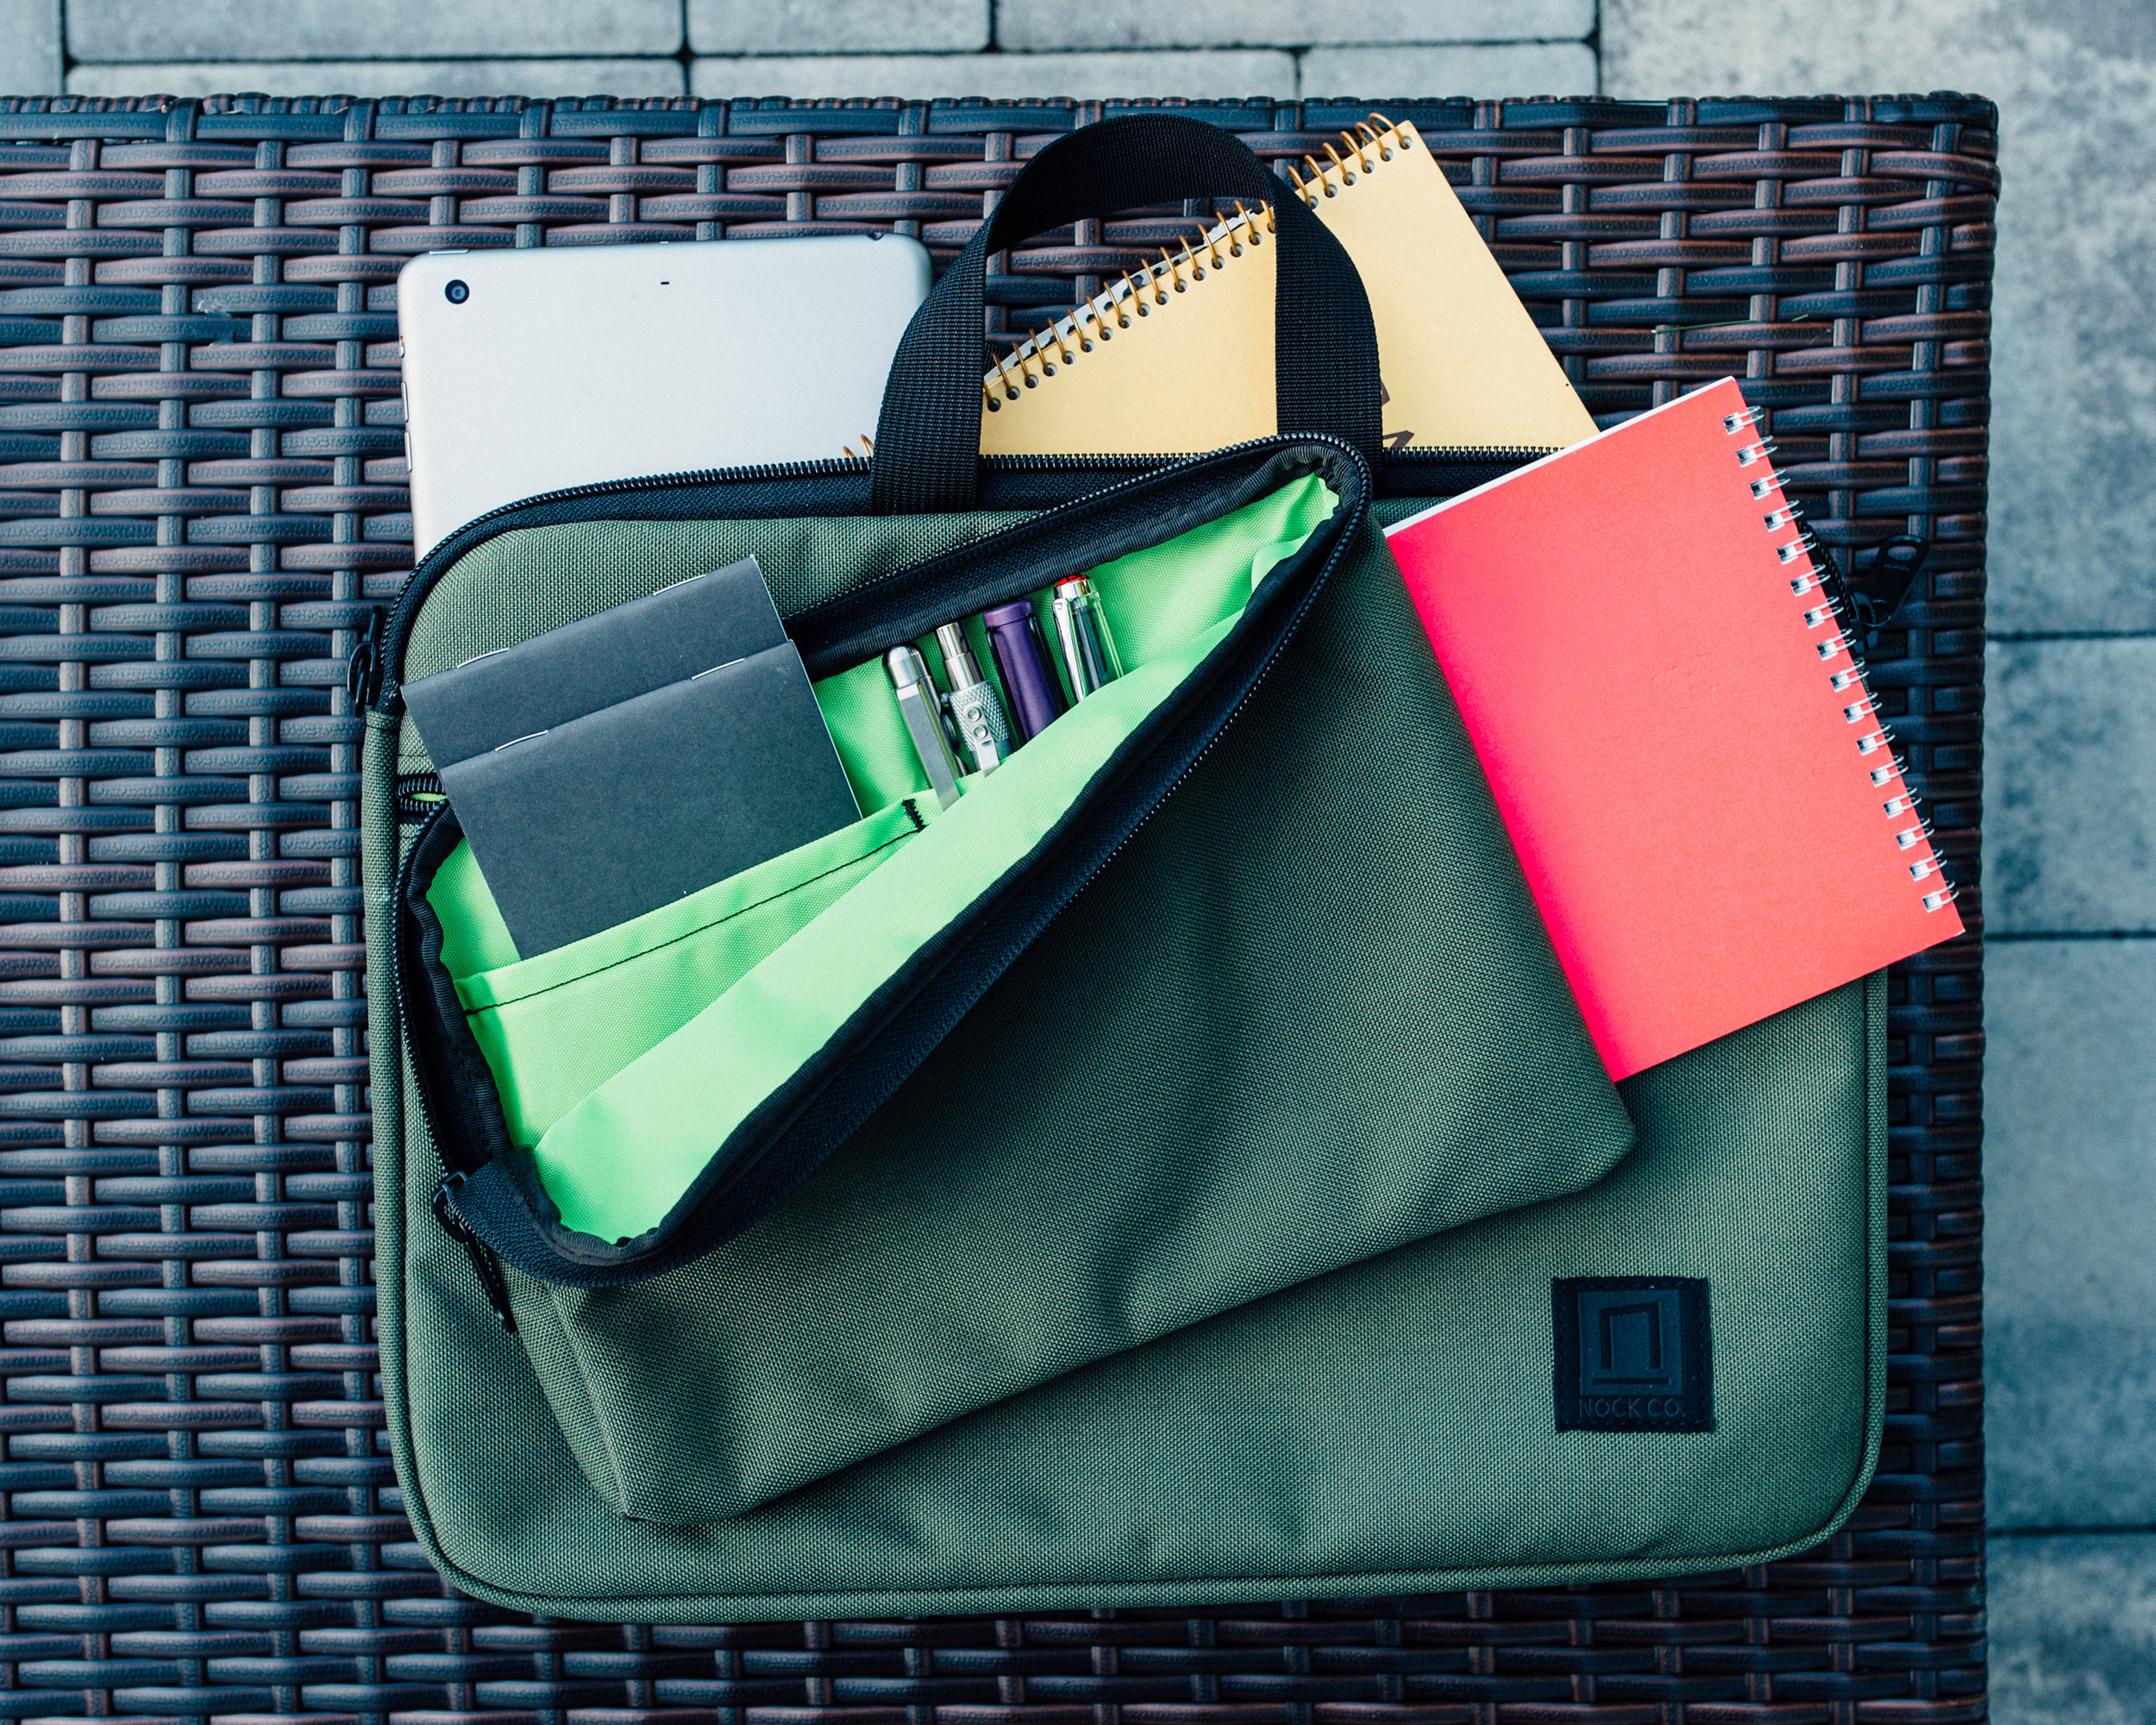 The Nock Co. Lanier minimal briefcase in the olive and lime green colorway.